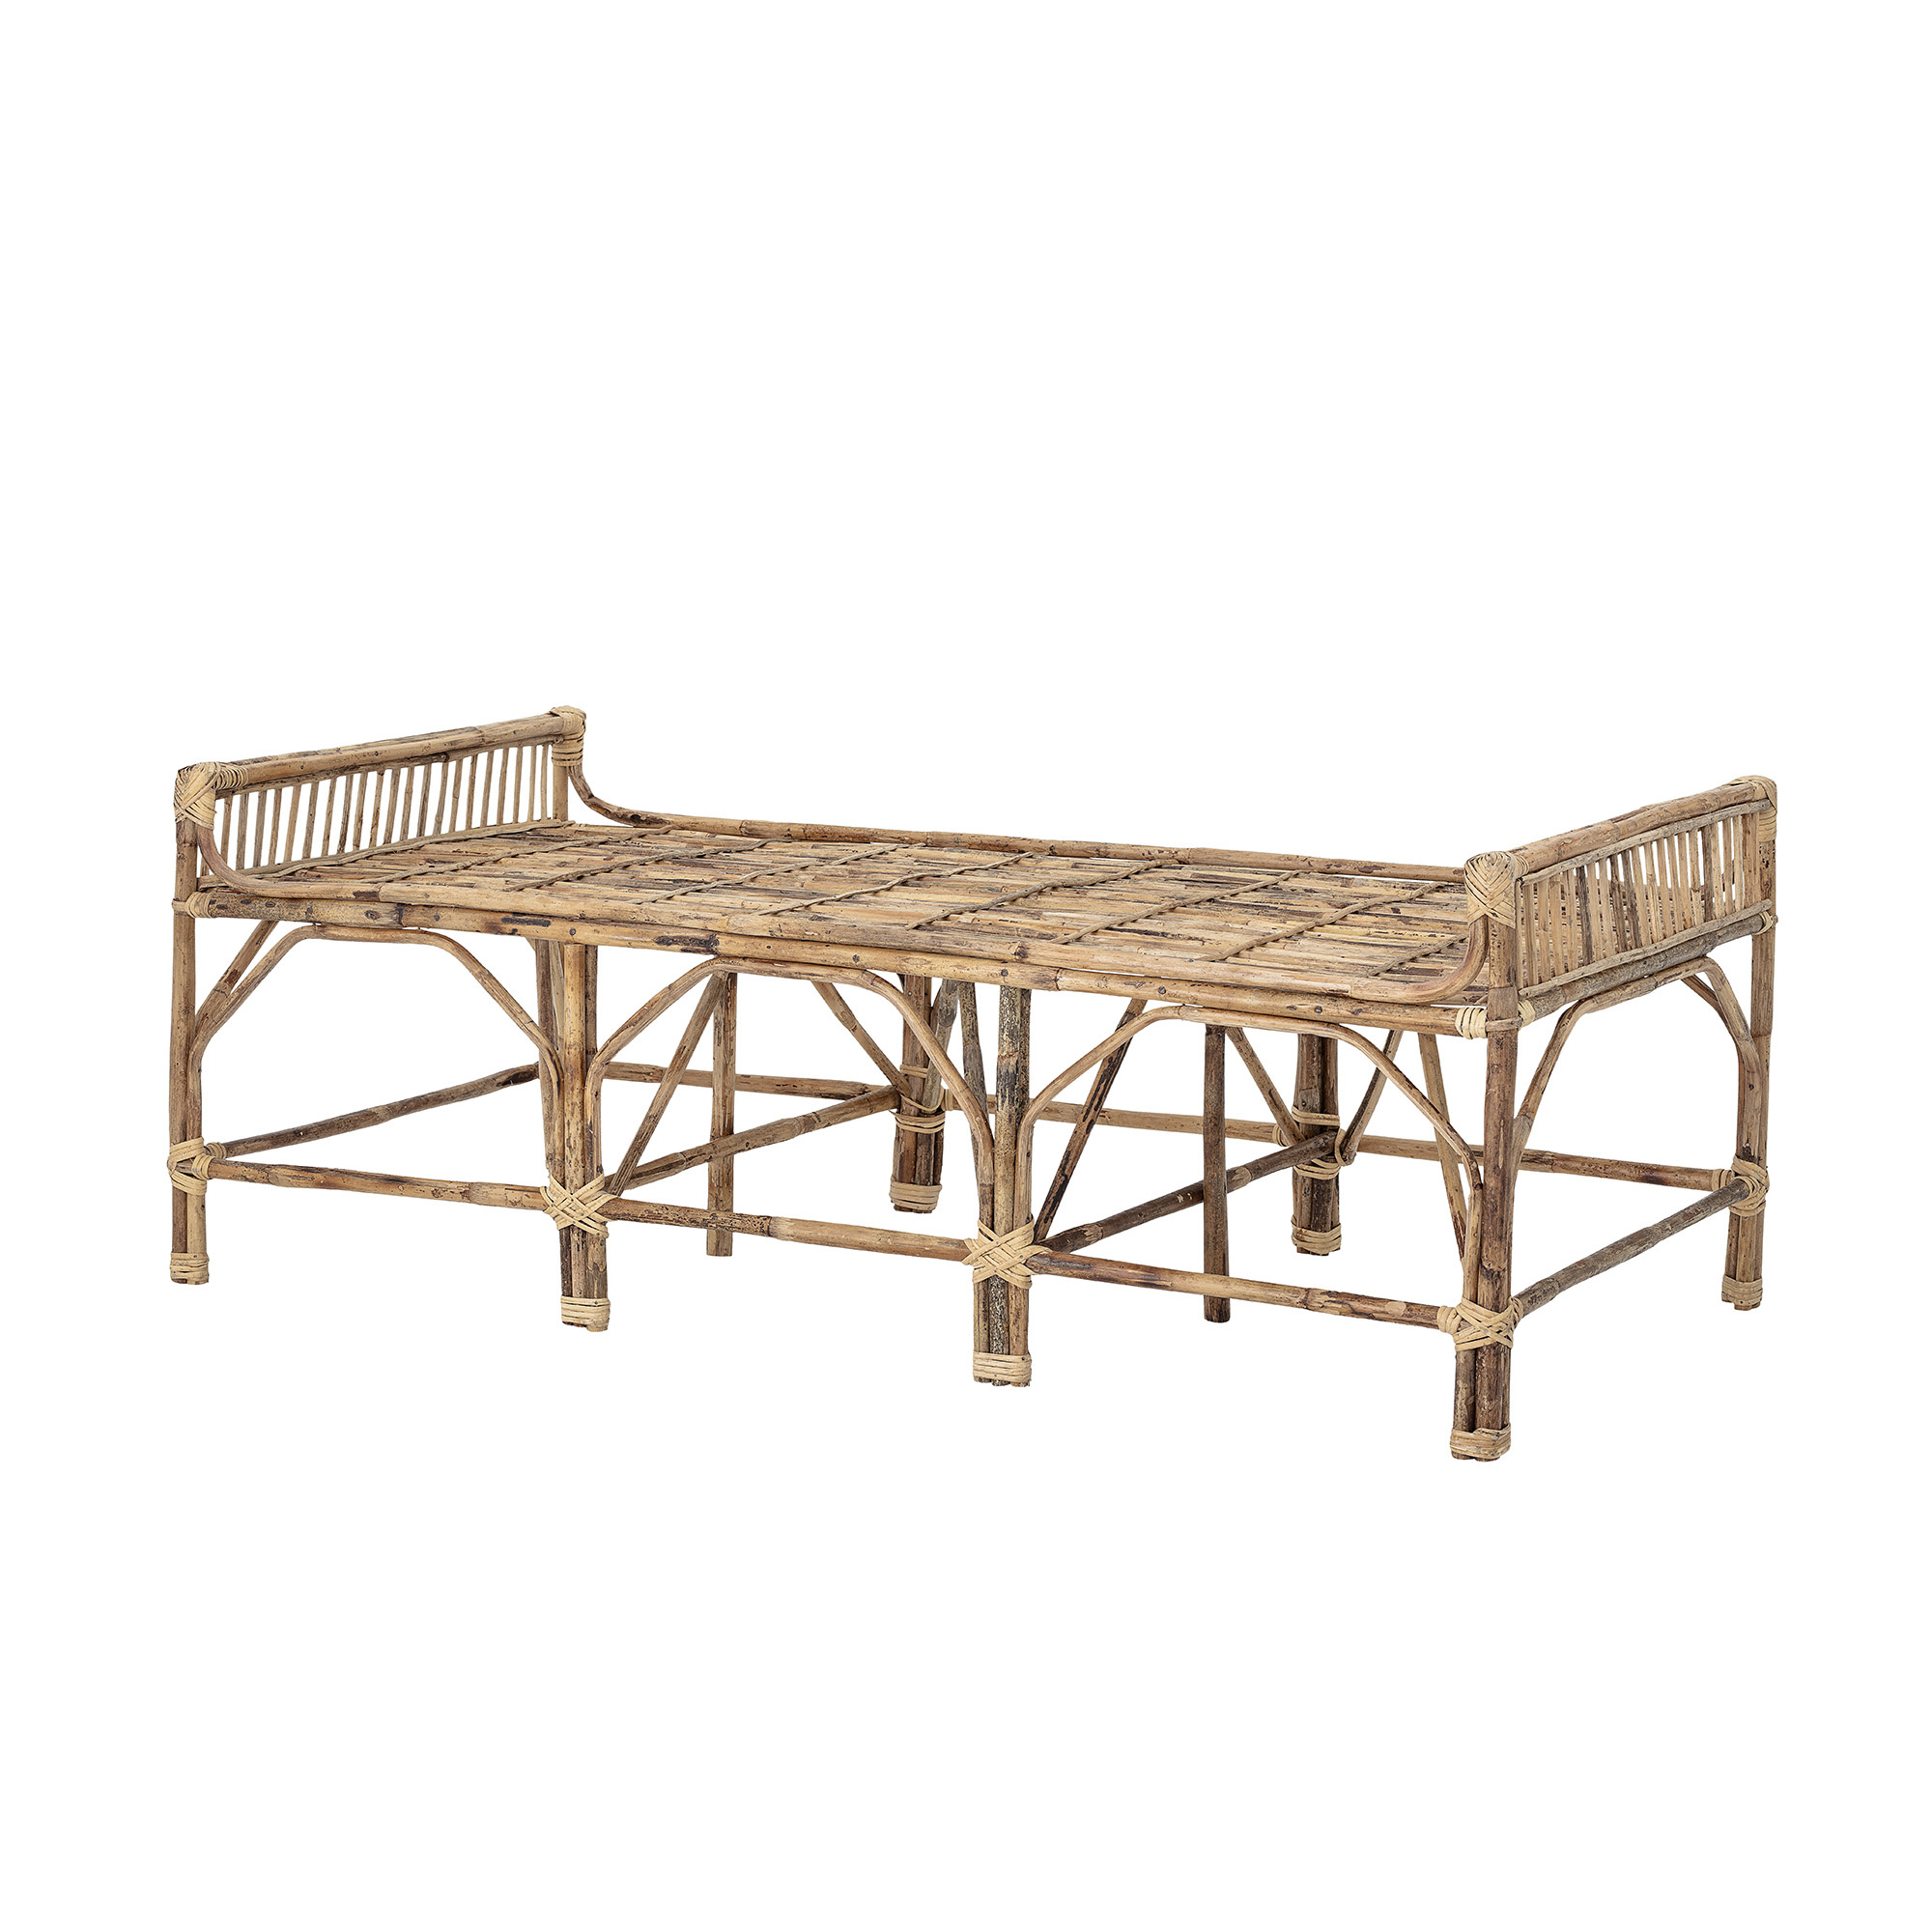 Bloomingville bench natural - Cane - L150xH55xW73 - Bloomingville